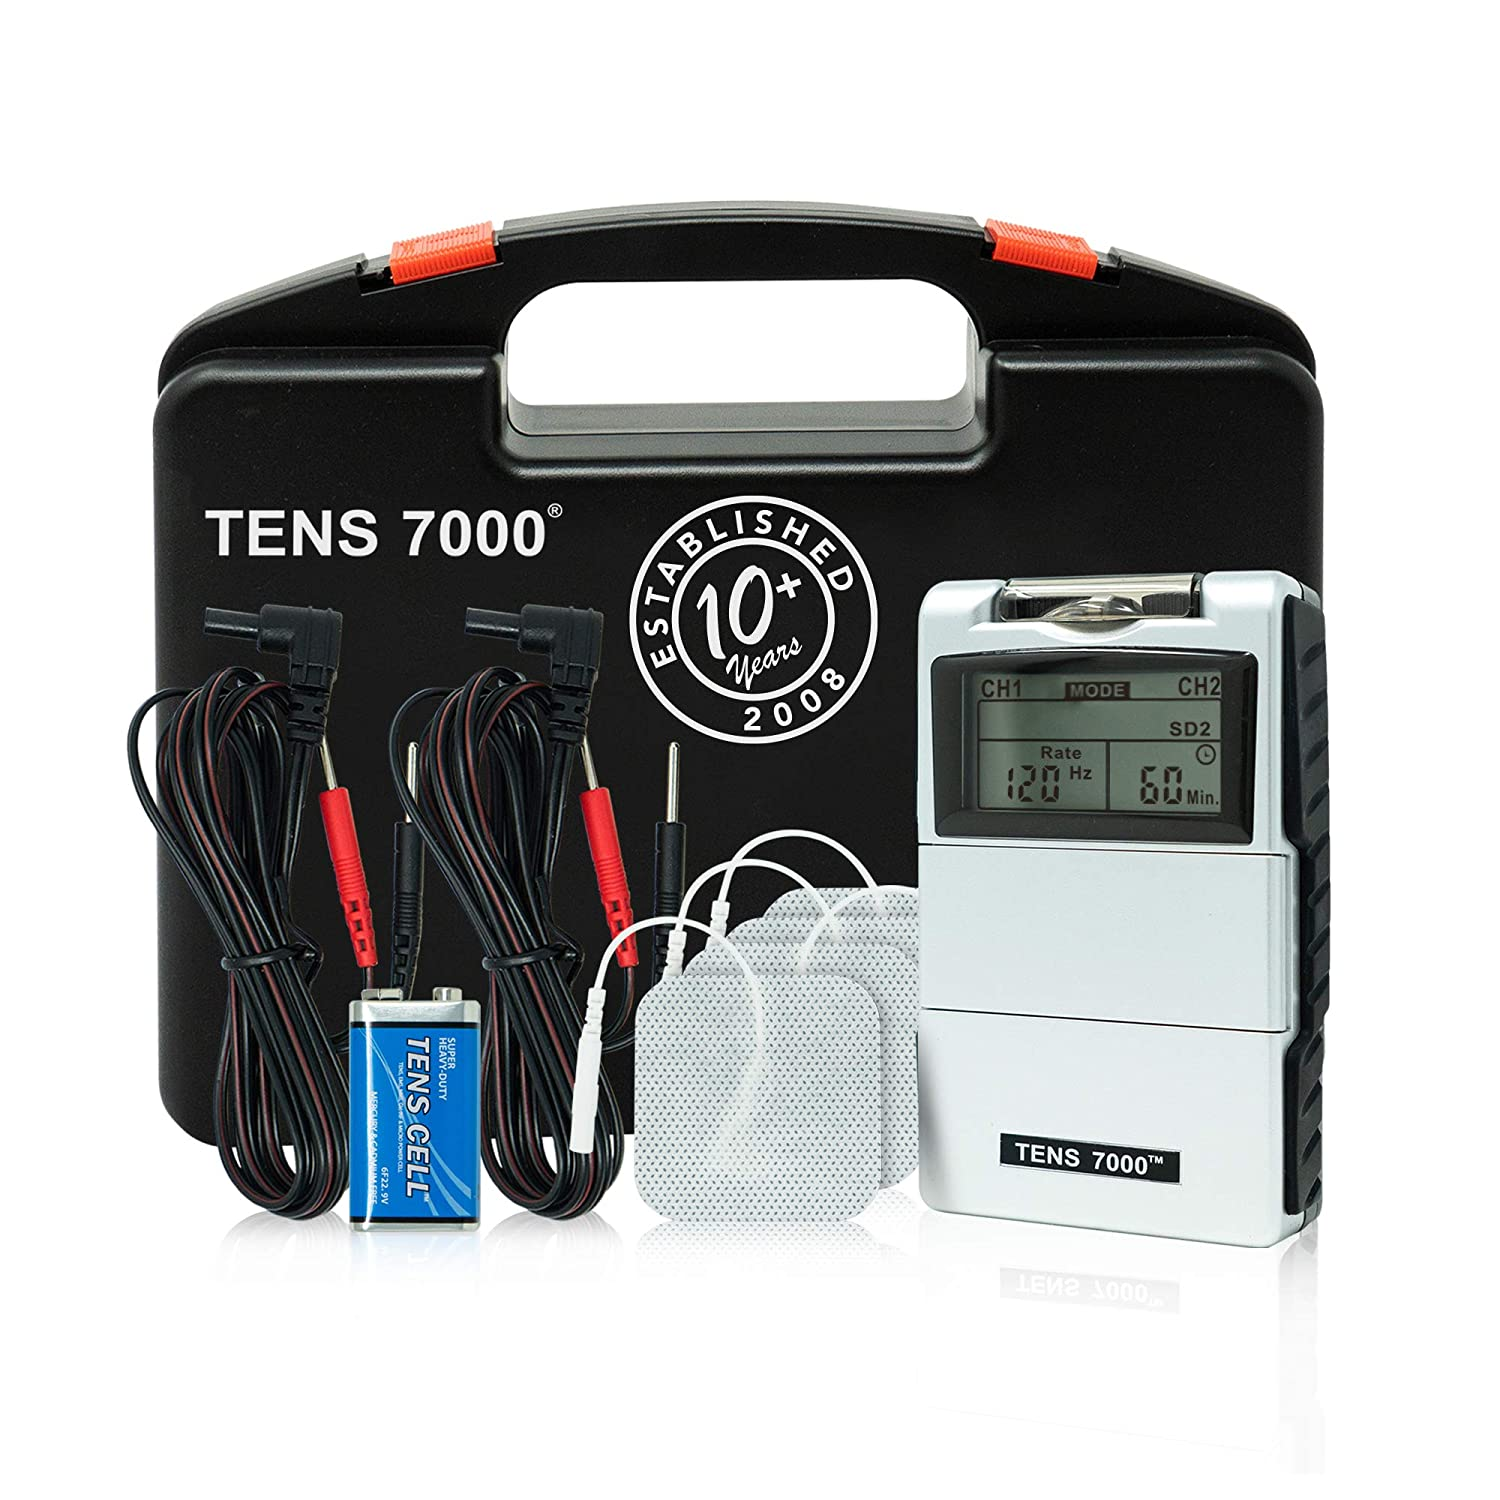 TENS 7000 Second Edition Digital Accessories & Tens Unit